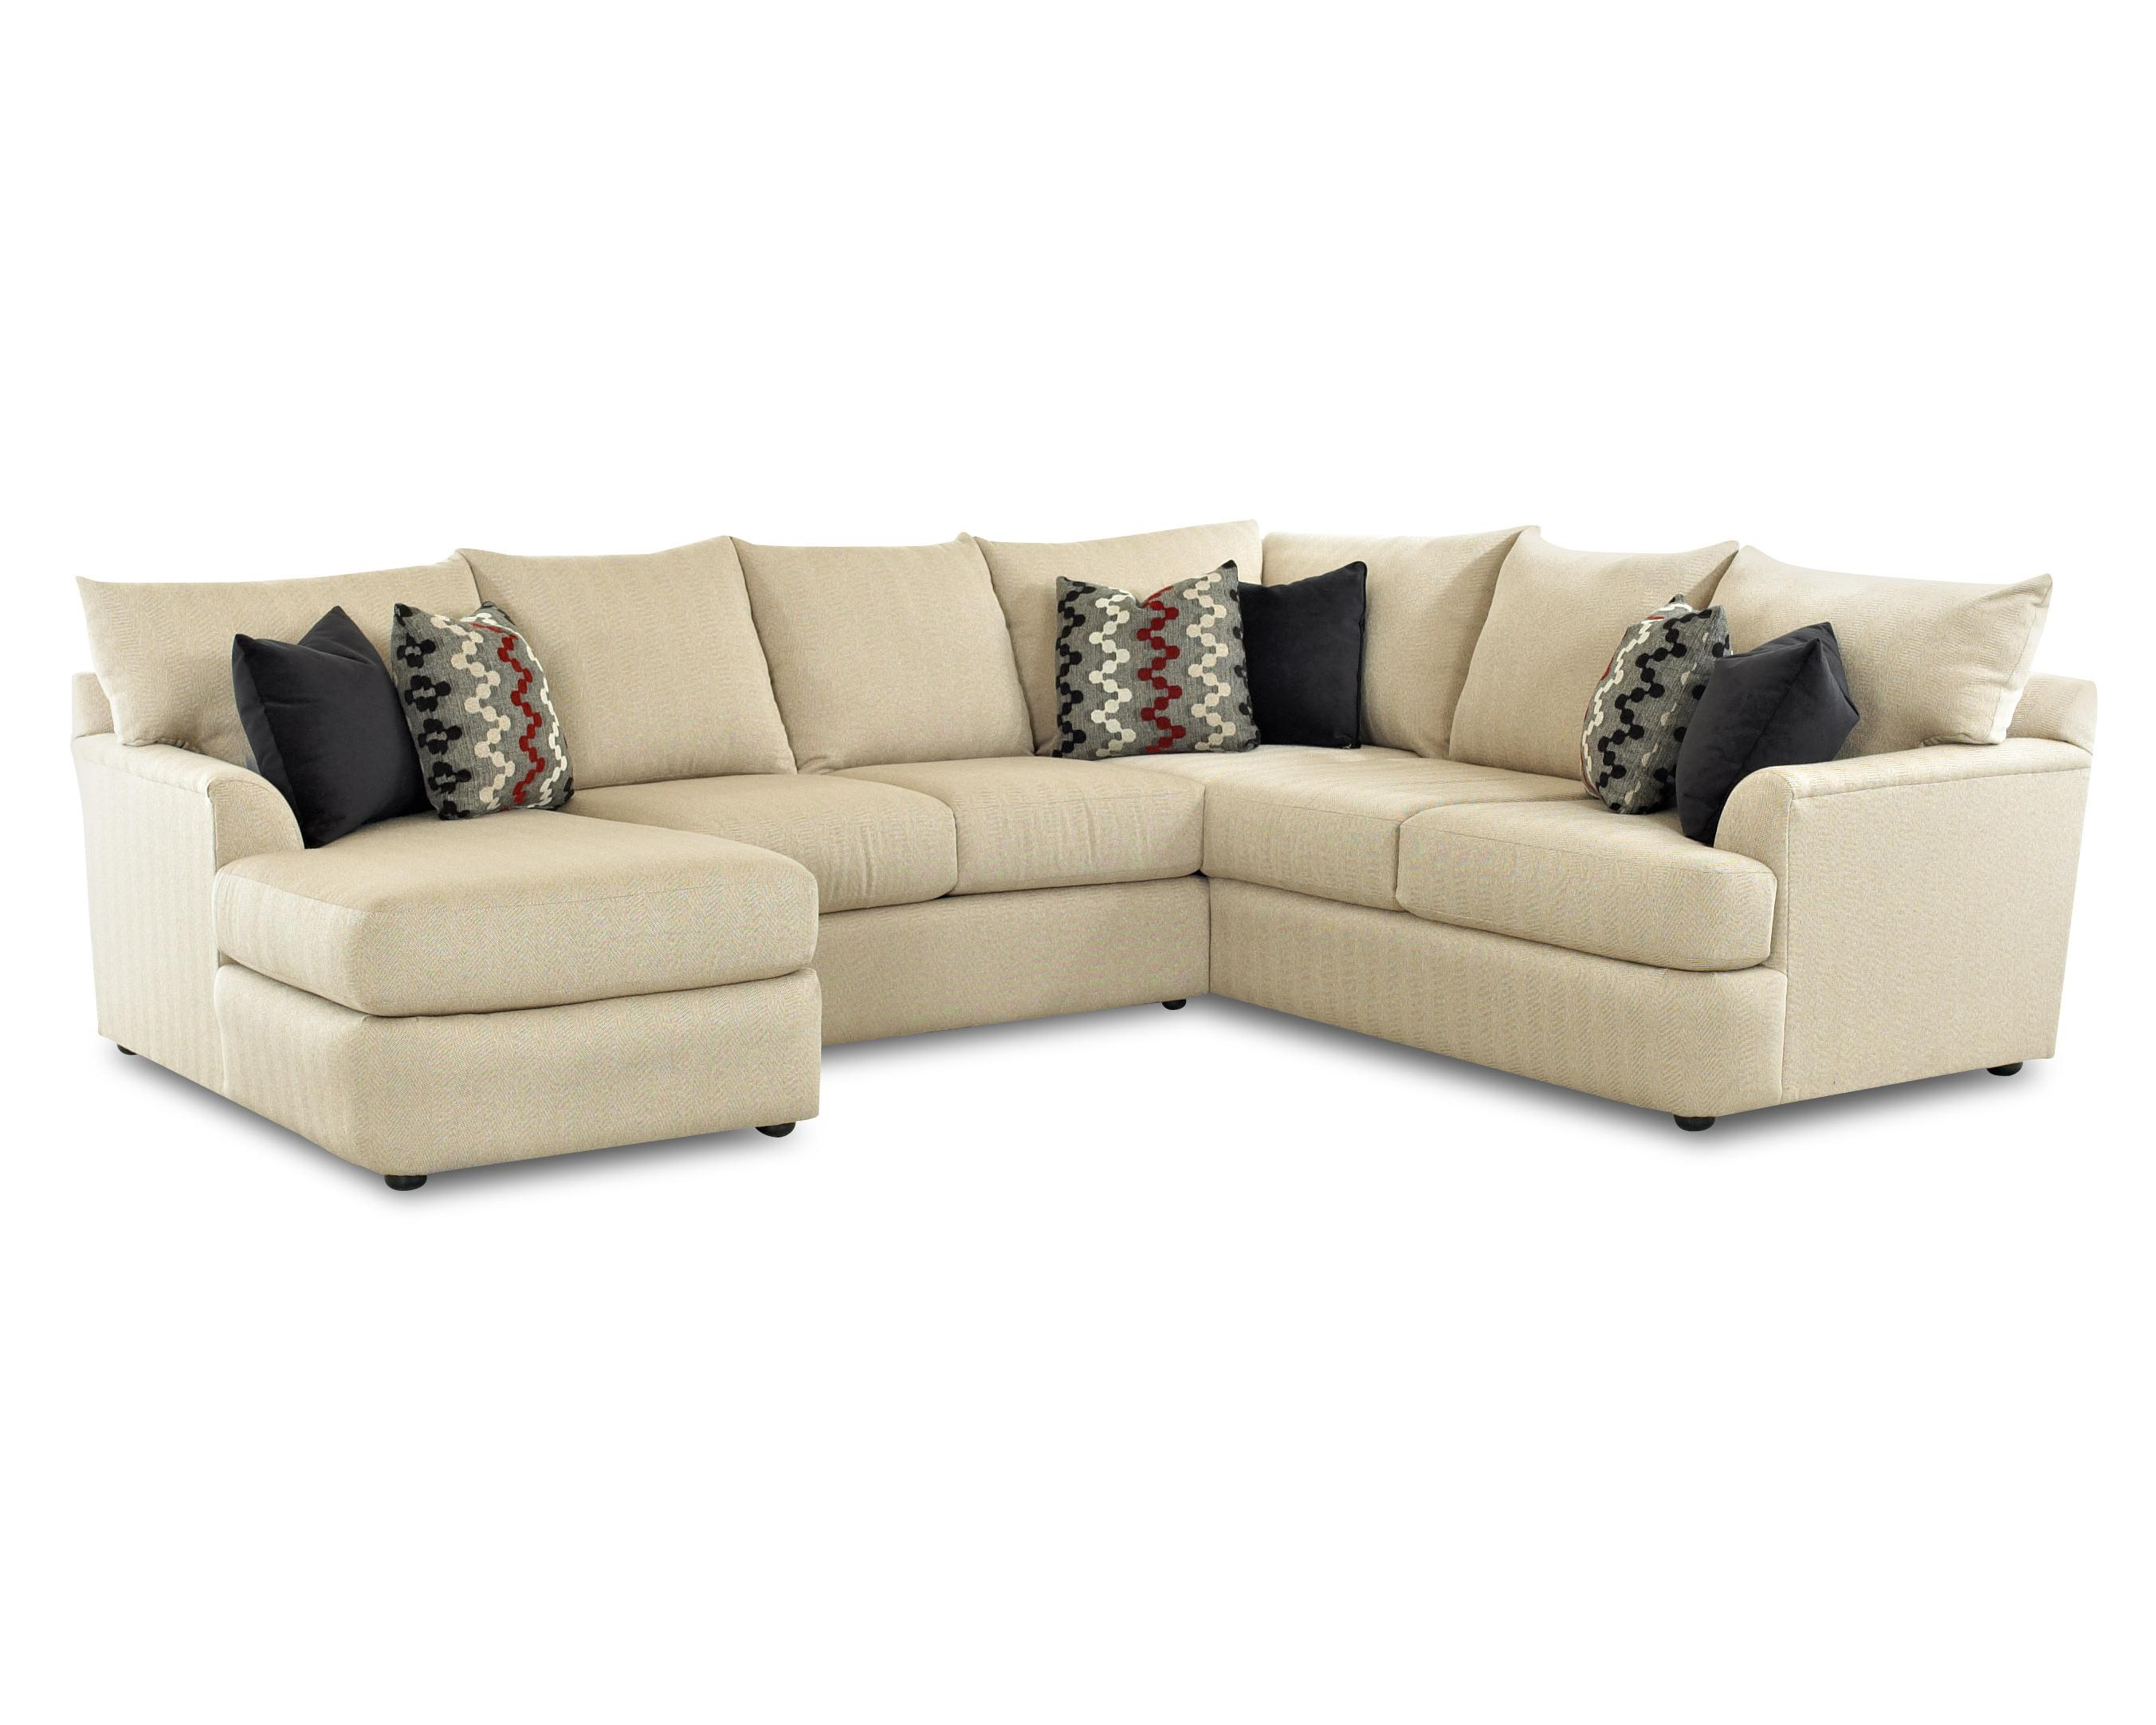 Sectional sofa with left side chaise lounger by klaussner for Amazon sectional sofa with chaise